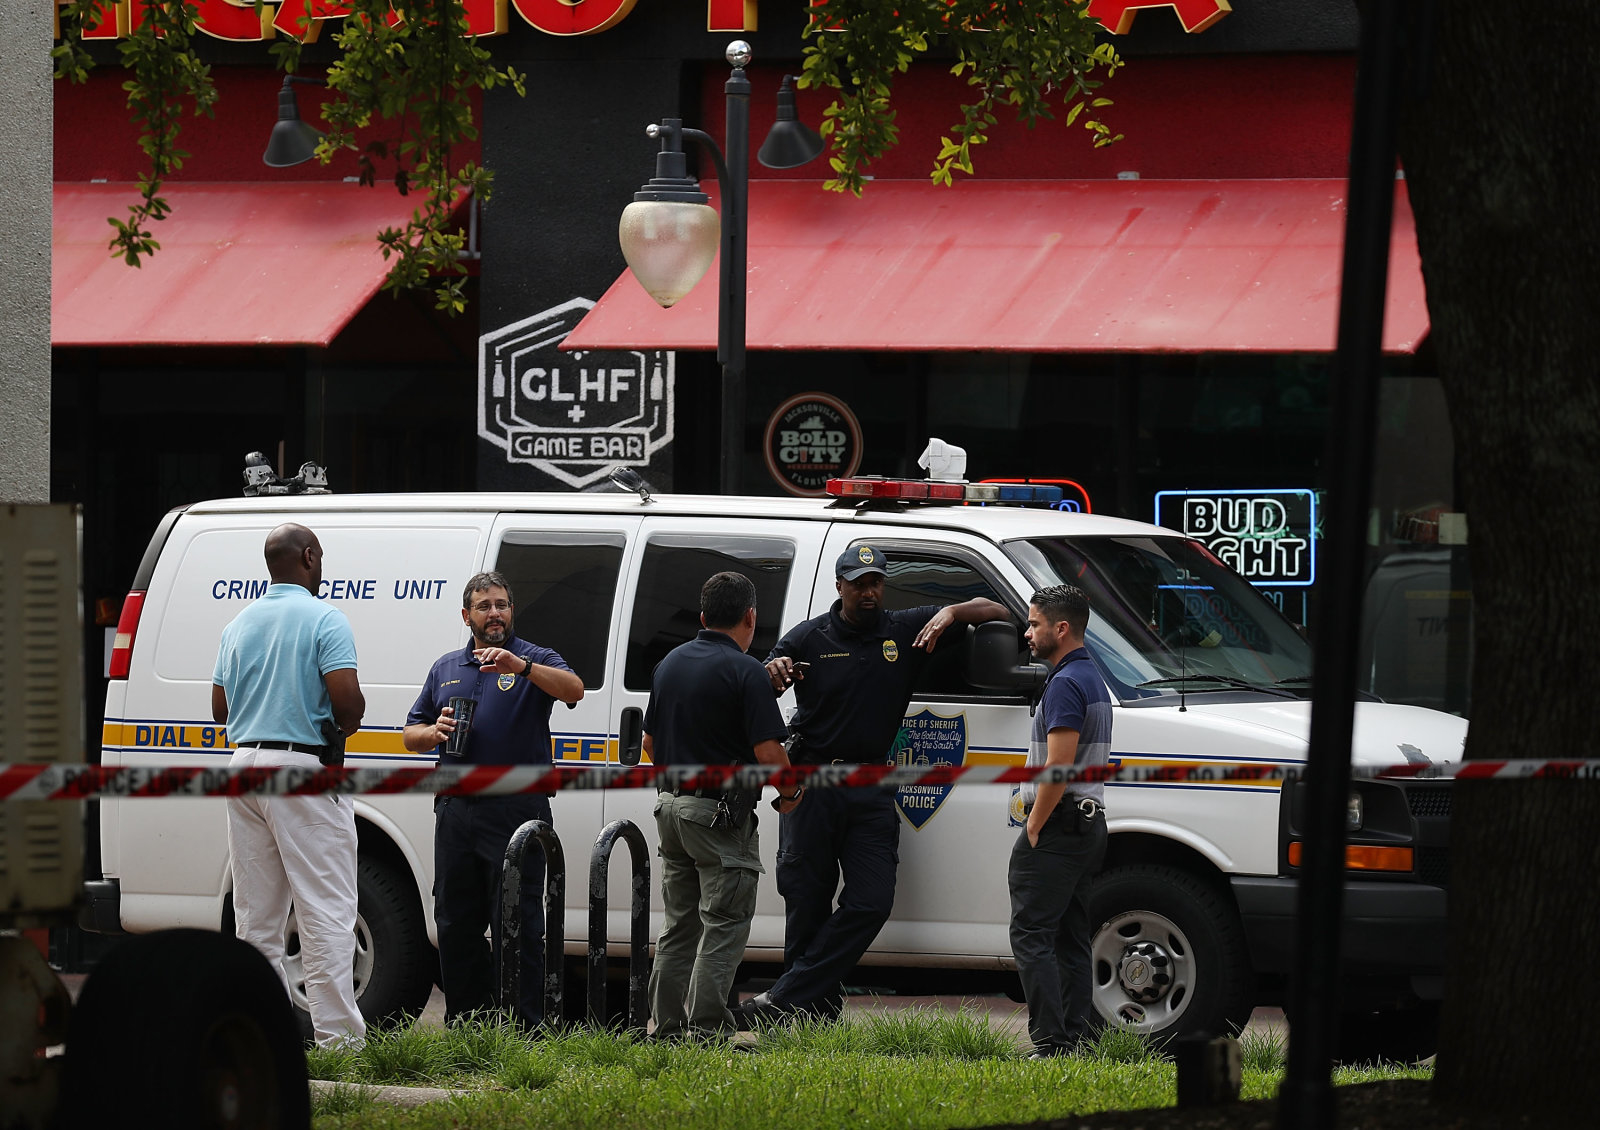 JACKSONVILLE, FL - AUGUST 27:  Law enforcement officials investigate a shooting in the GLHF Game Bar where 3 people including the gunman were killed at the Jacksonville Landing on August 27, 2018 in Jacksonville, Florida. The shooting occurred during a Madden 19 video game tournament and initial reports indicate 3 people were killed including the gunman, with several others wounded.  (Photo by Joe Raedle/Getty Images)